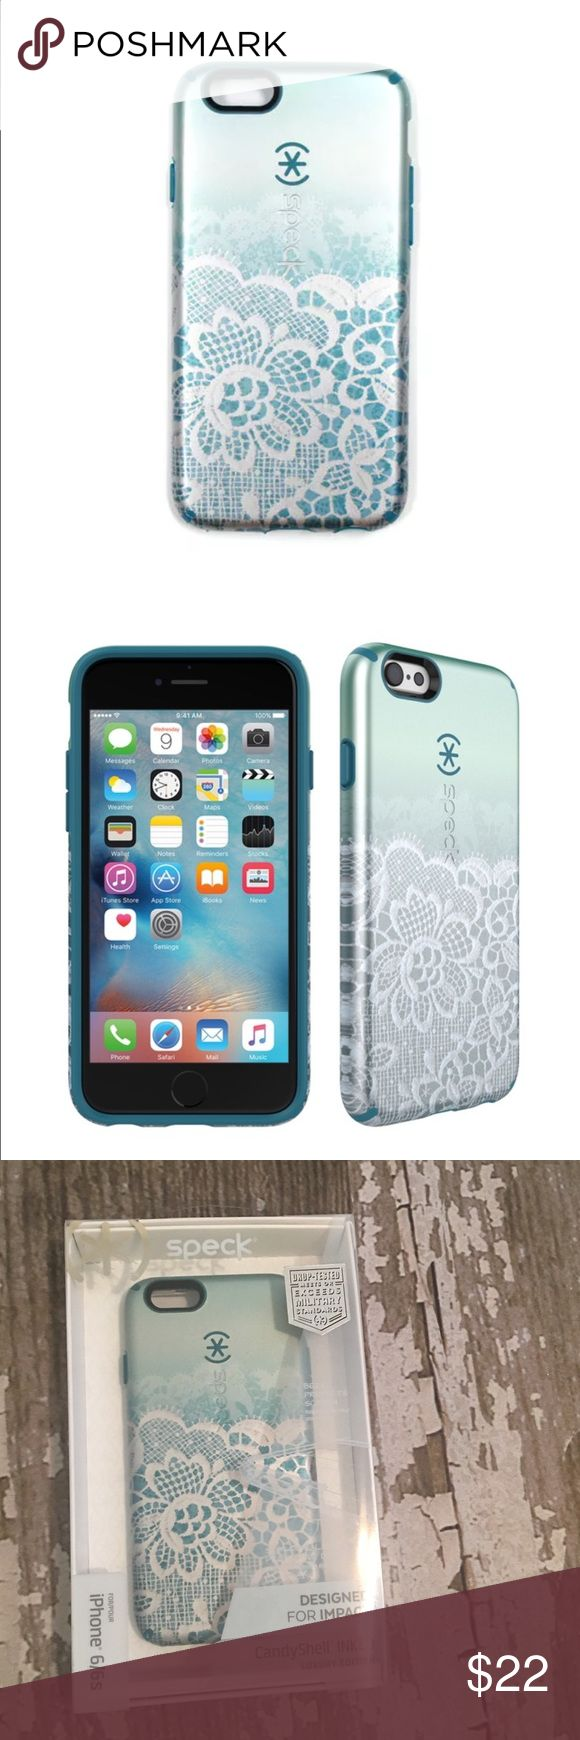 SALENEW Speck iPhone 6/6S Inked Case  NEW Speck IPhone 6 6S Candyshell Inked, Luxury Special Edition Cover/Case. Scalloped Lace/Atlantic Blue. Makes a great stocking stuffer  Bundle to Save More! speck Accessories Phone Cases